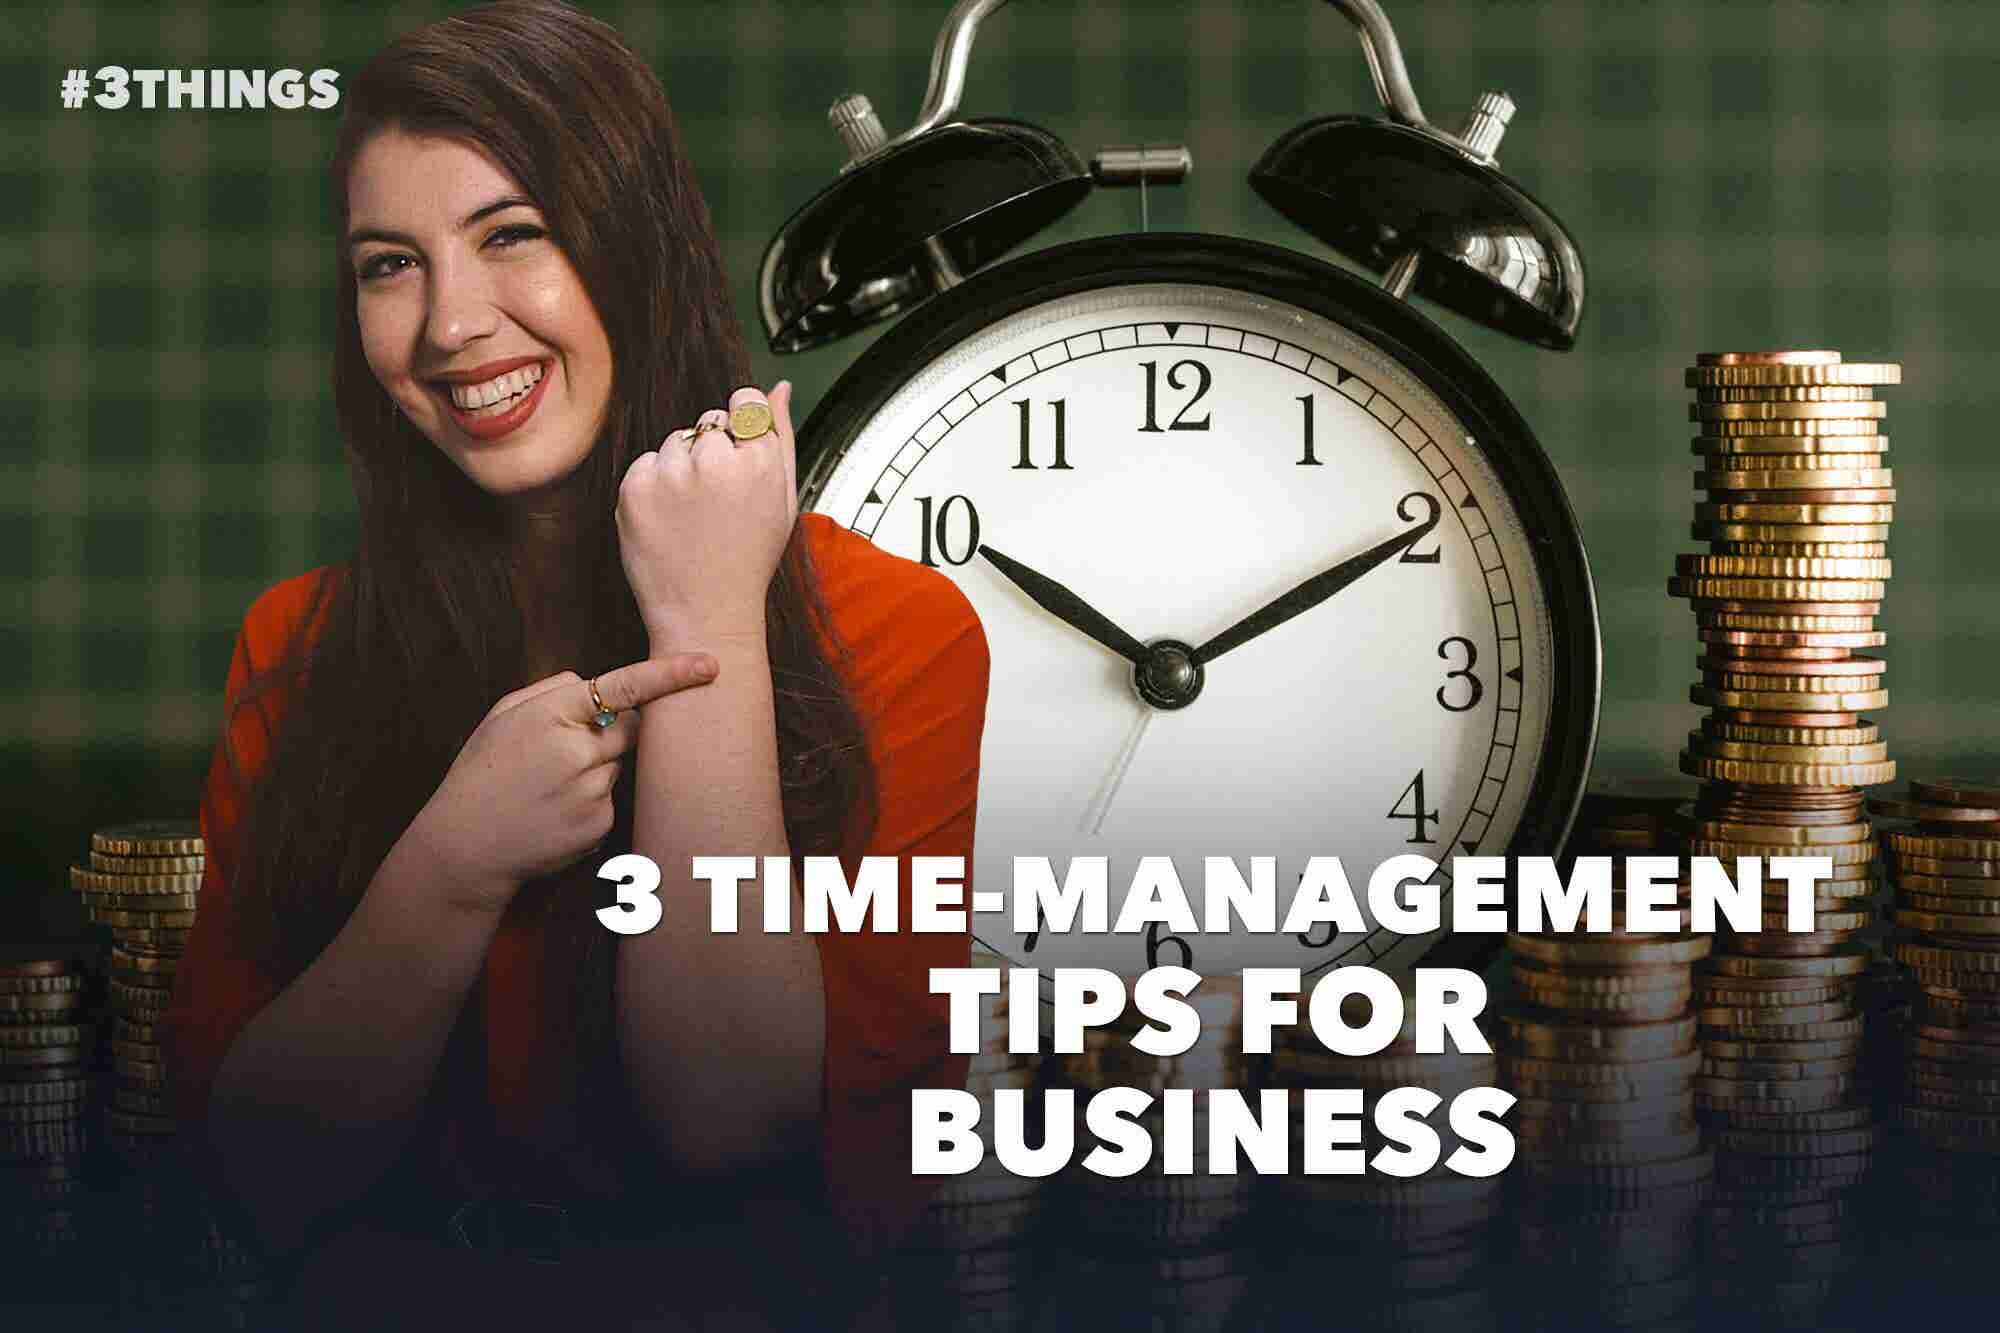 3 Time-Management Tips for Entrepreneurs (60-Second Video)